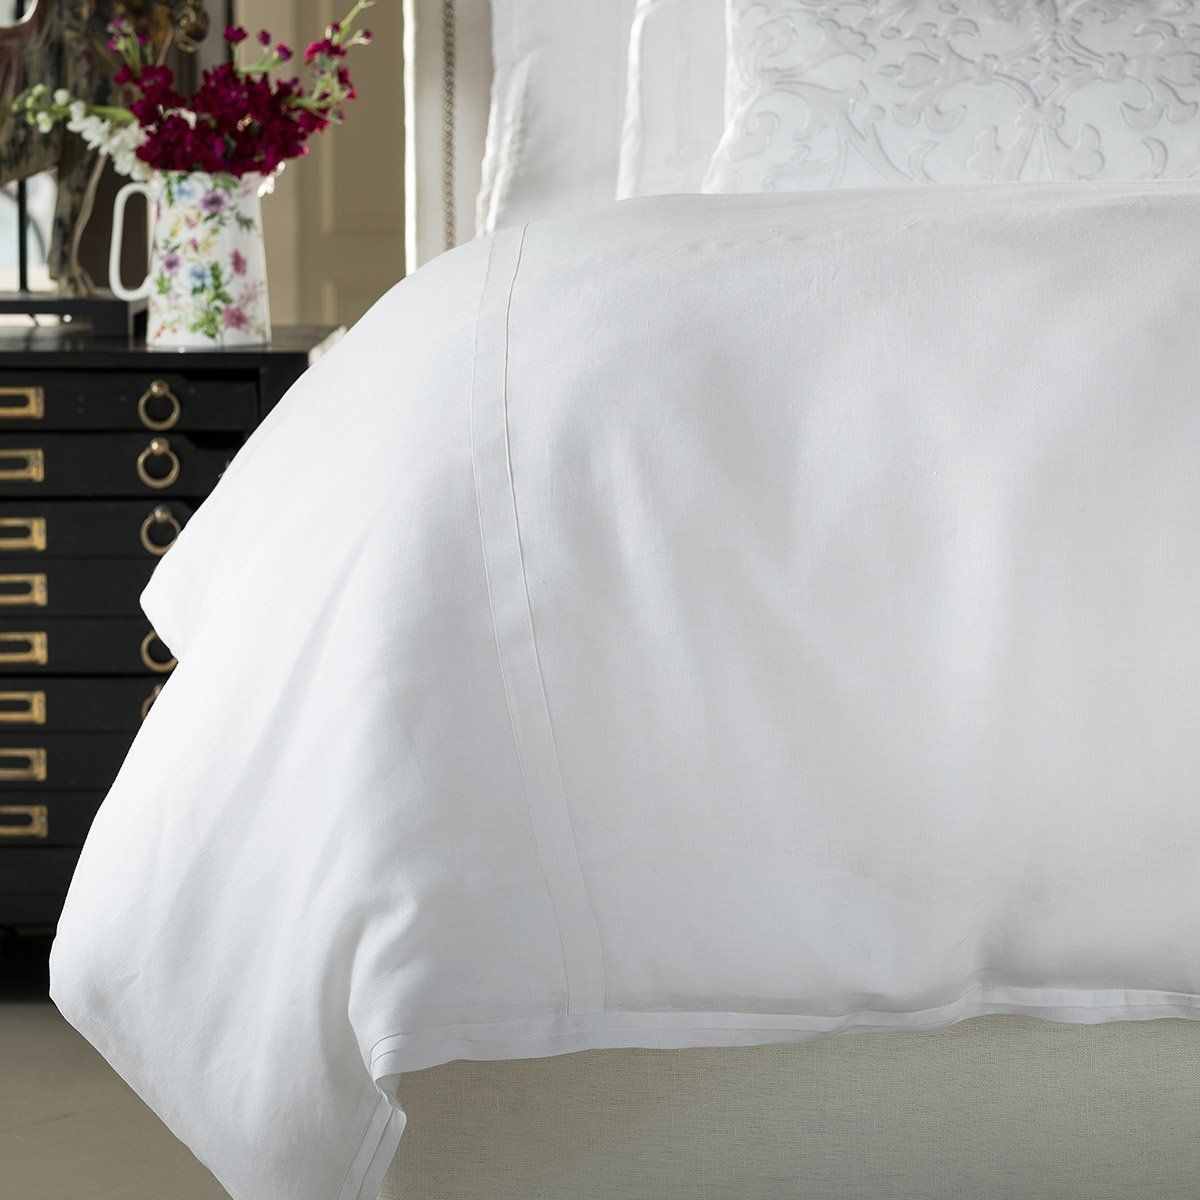 Bloom White Bedding by Lili Alessandra